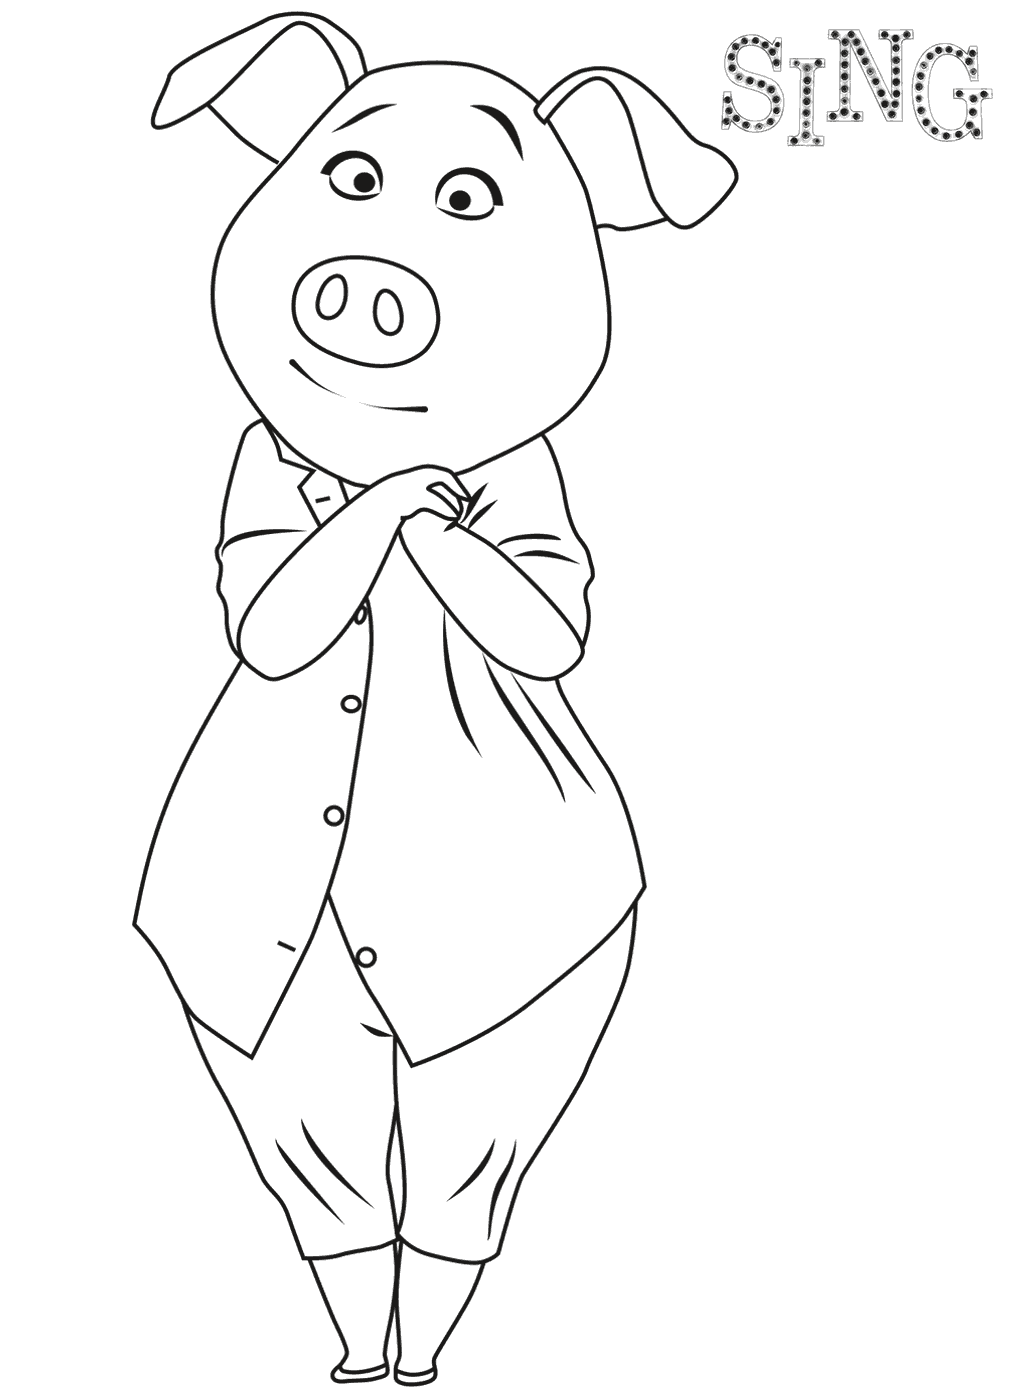 free colouring pages sing coloring pages for kids free images sing movie free sing colouring free pages